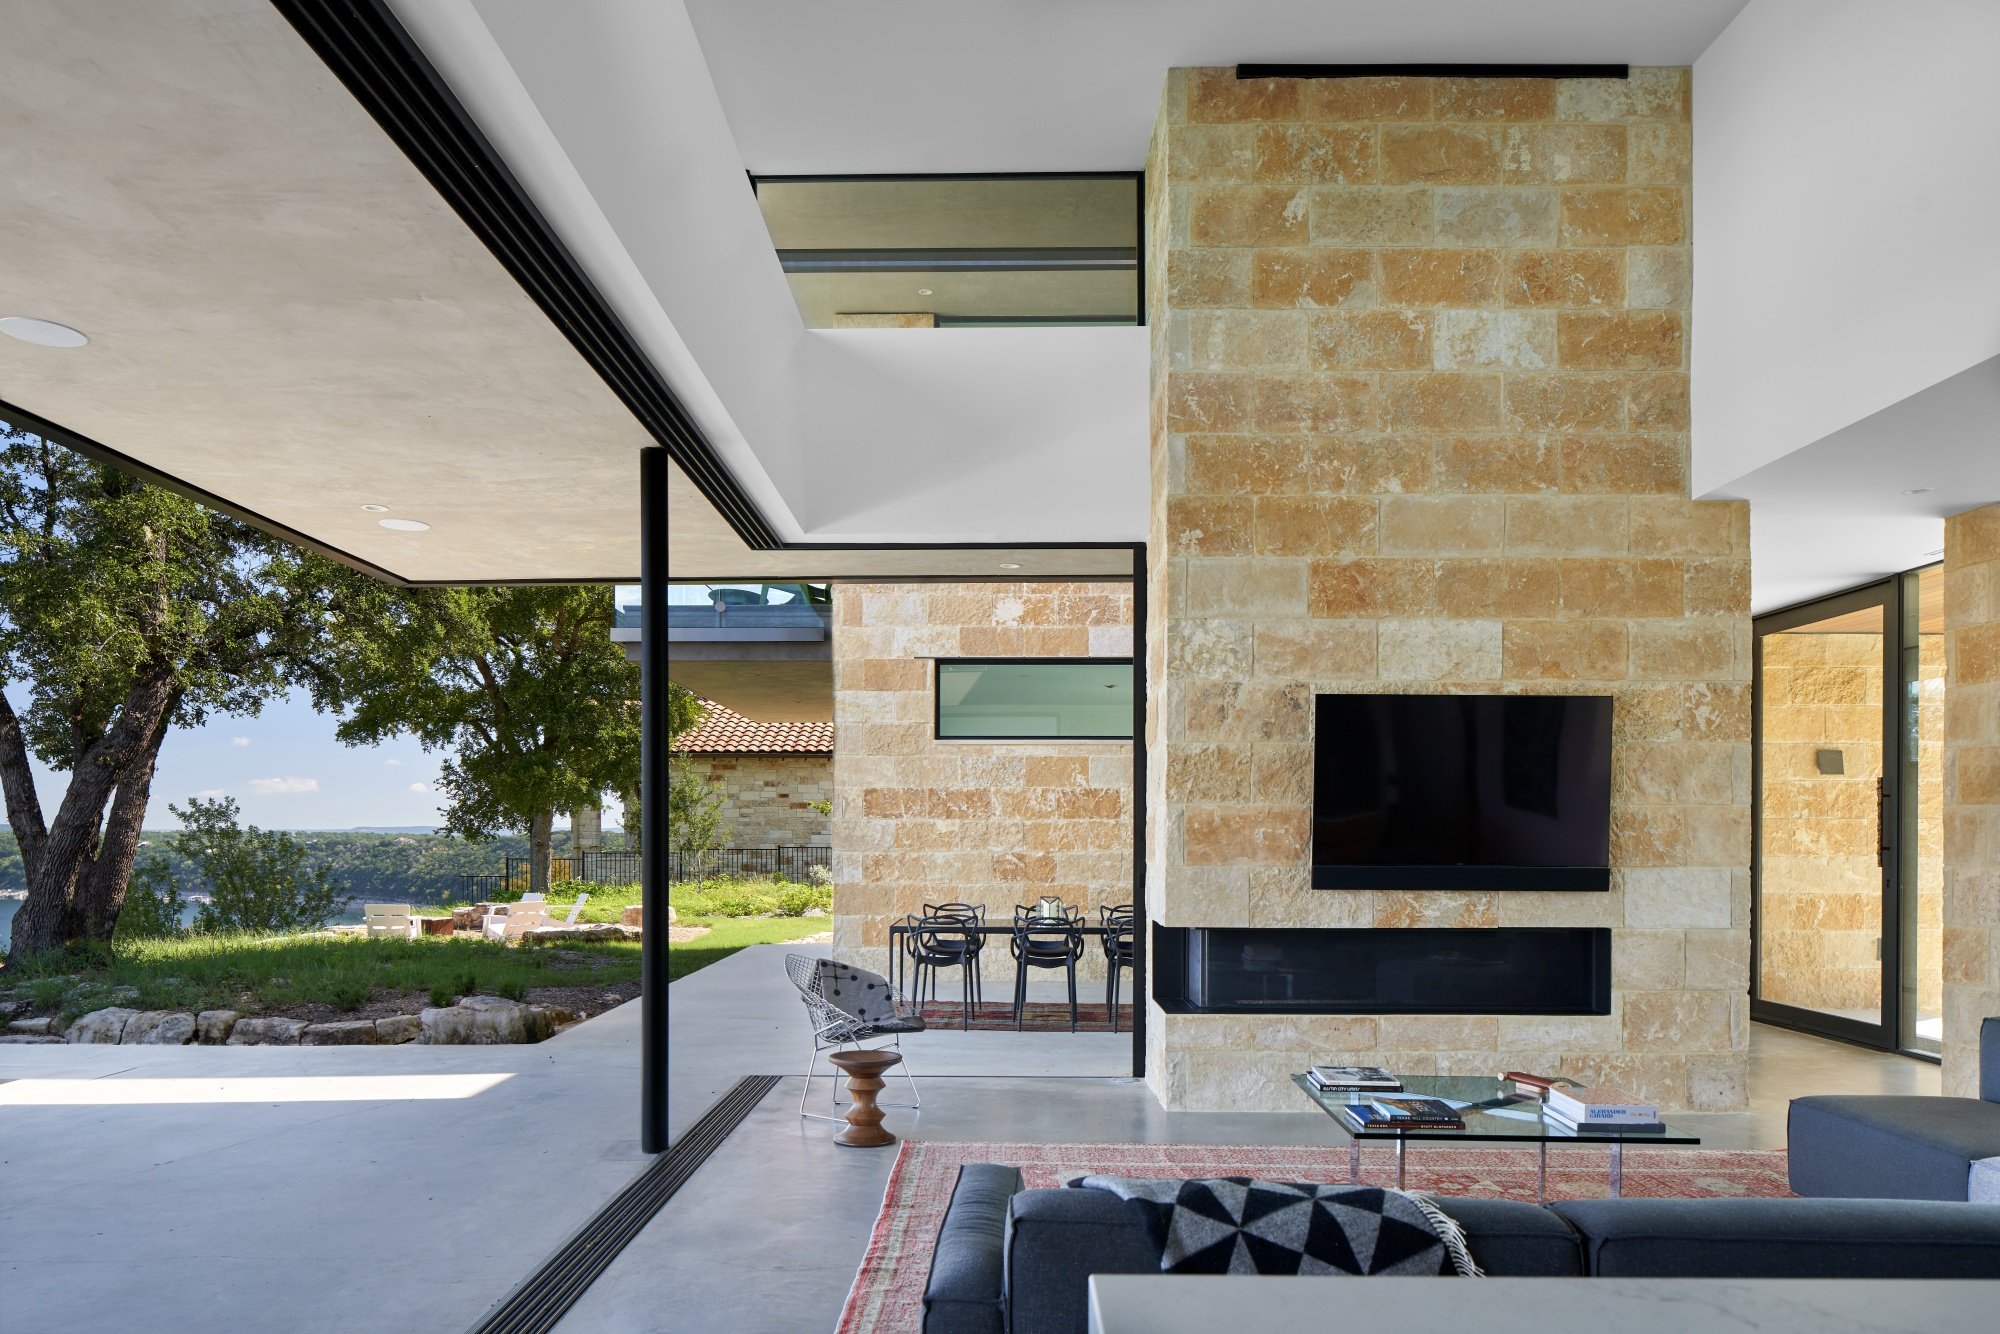 Blurred lines between inside and outdoor living.